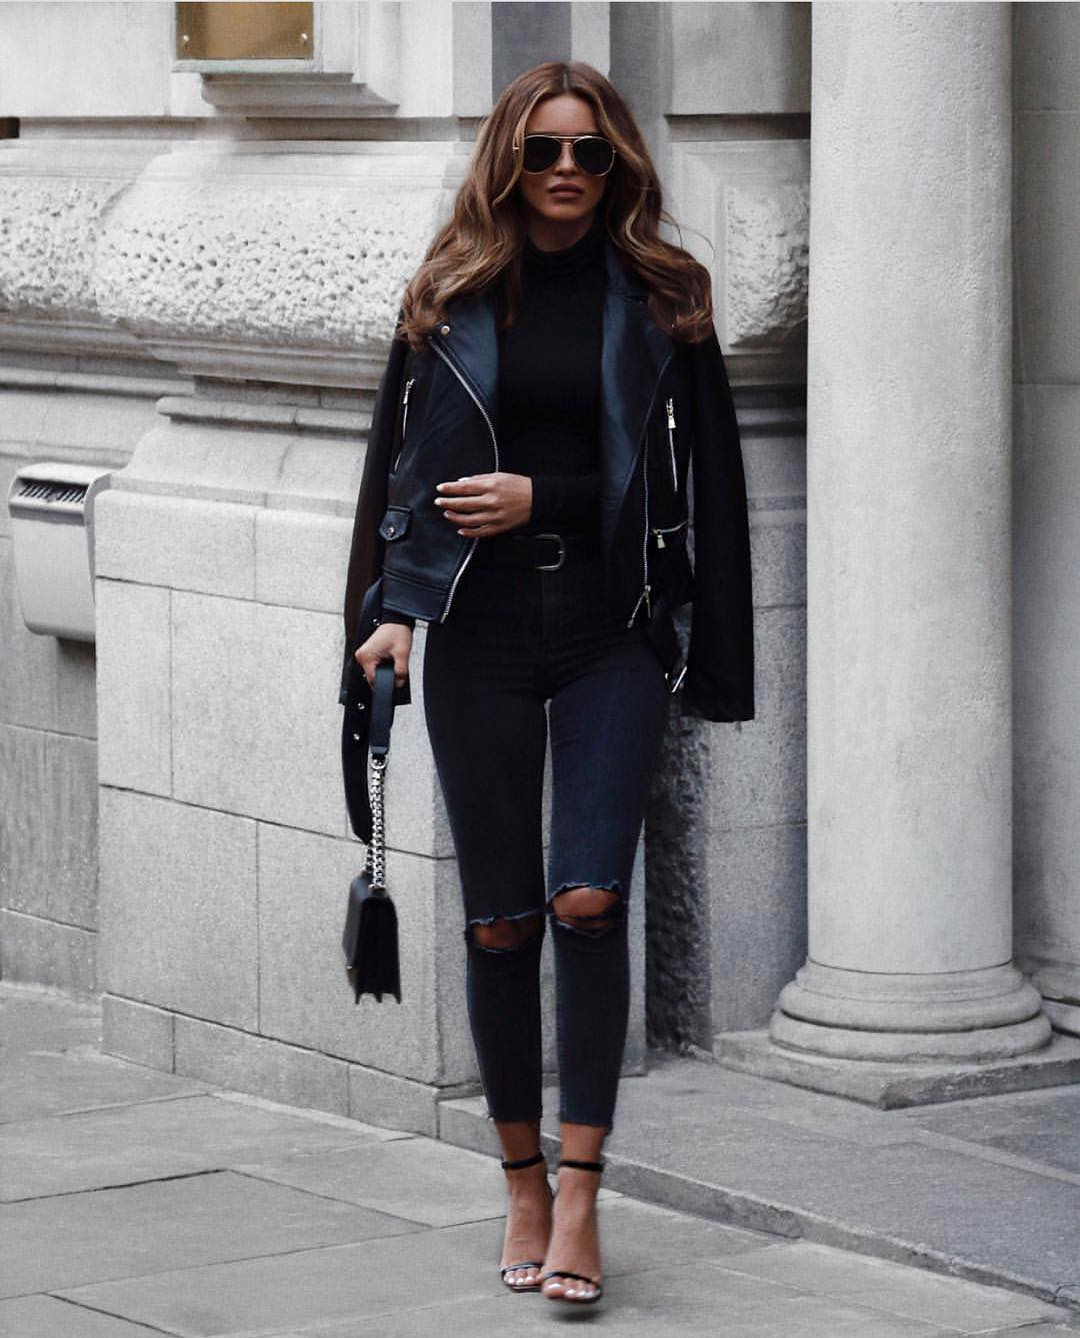 All Black Fall Outfit: Leather Jacket, Black Bodysuit And Skinny Jeans 2021